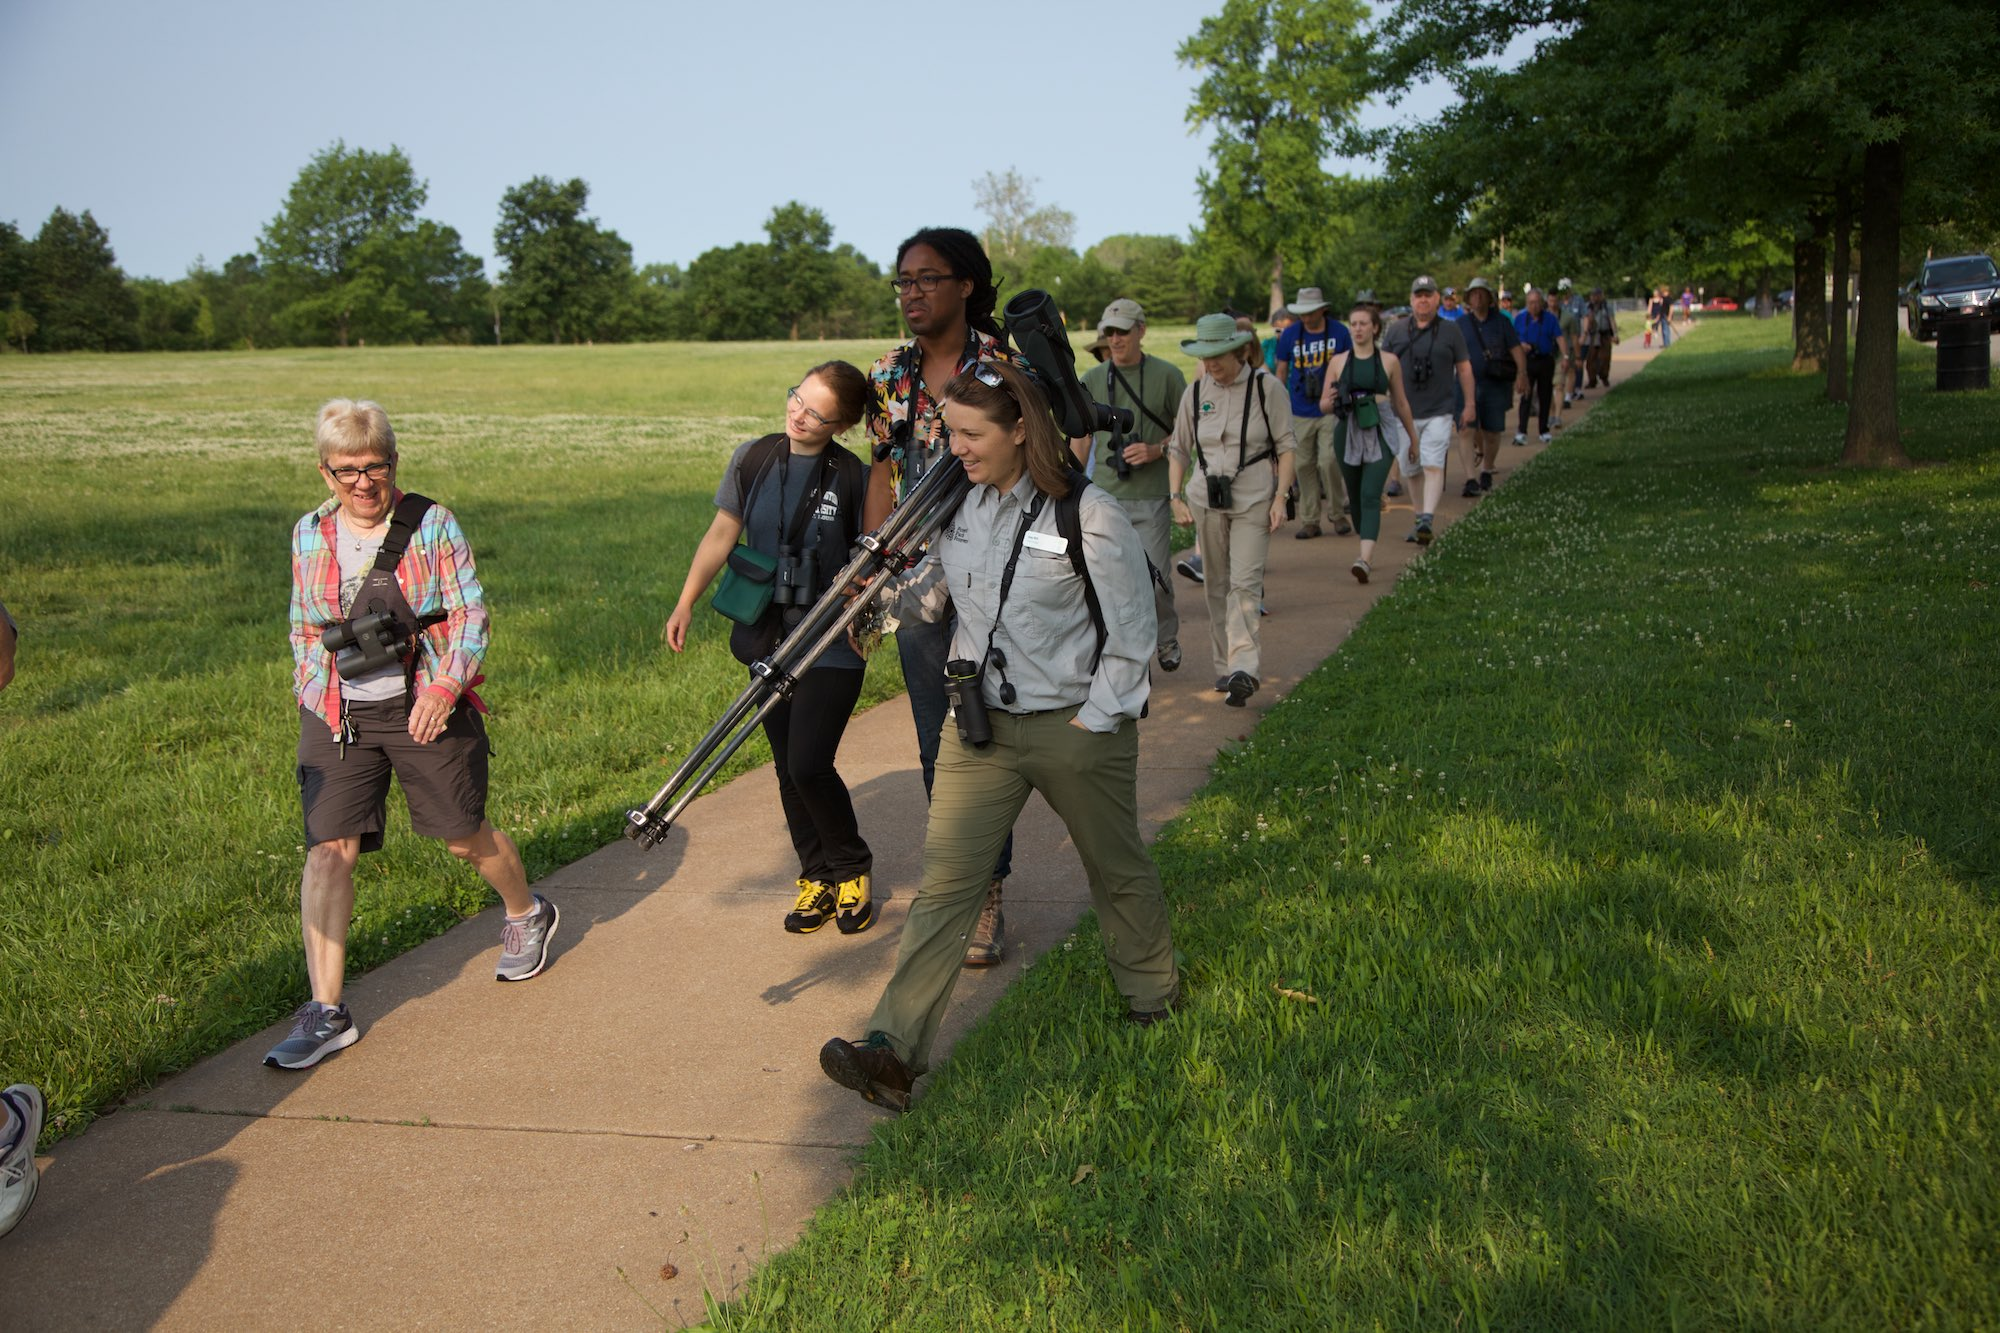 Amy Witt, the Forest Park Forever park ecologist, leads a procession of homo sapiens on a journey of avian discovery. Click on the image for more photos.